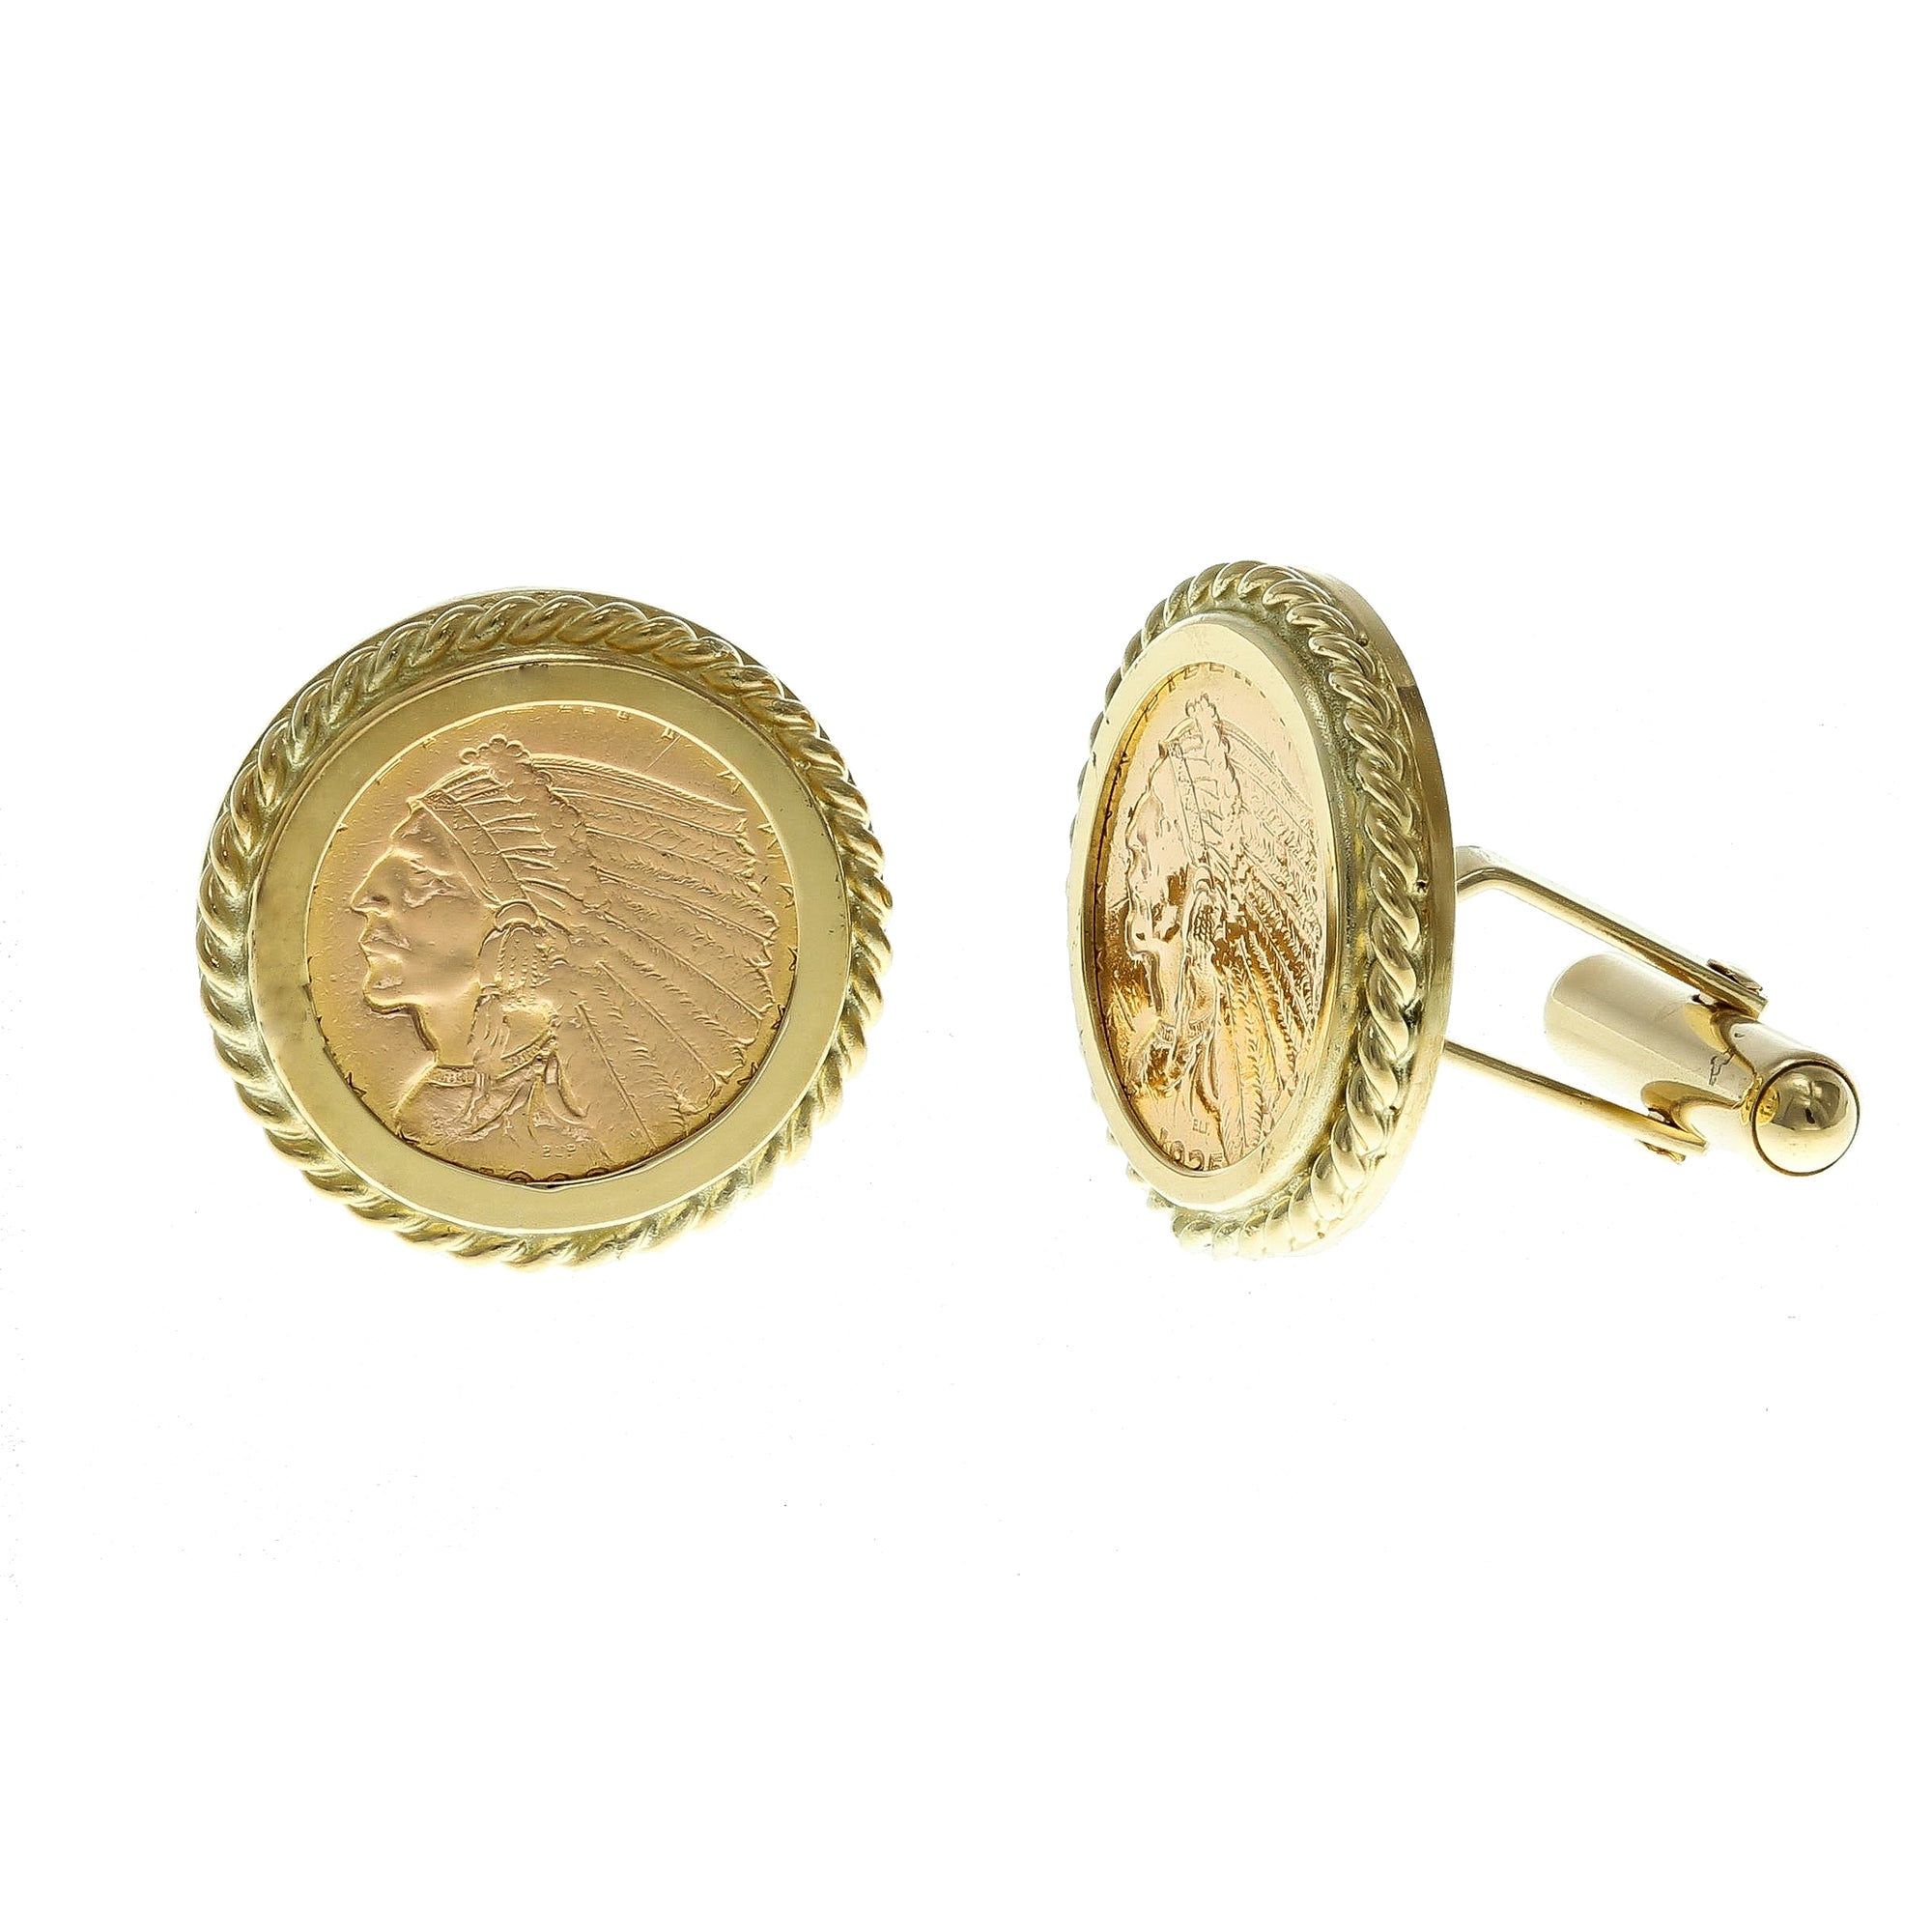 Cuff Links 1832 Indian Gold Coin